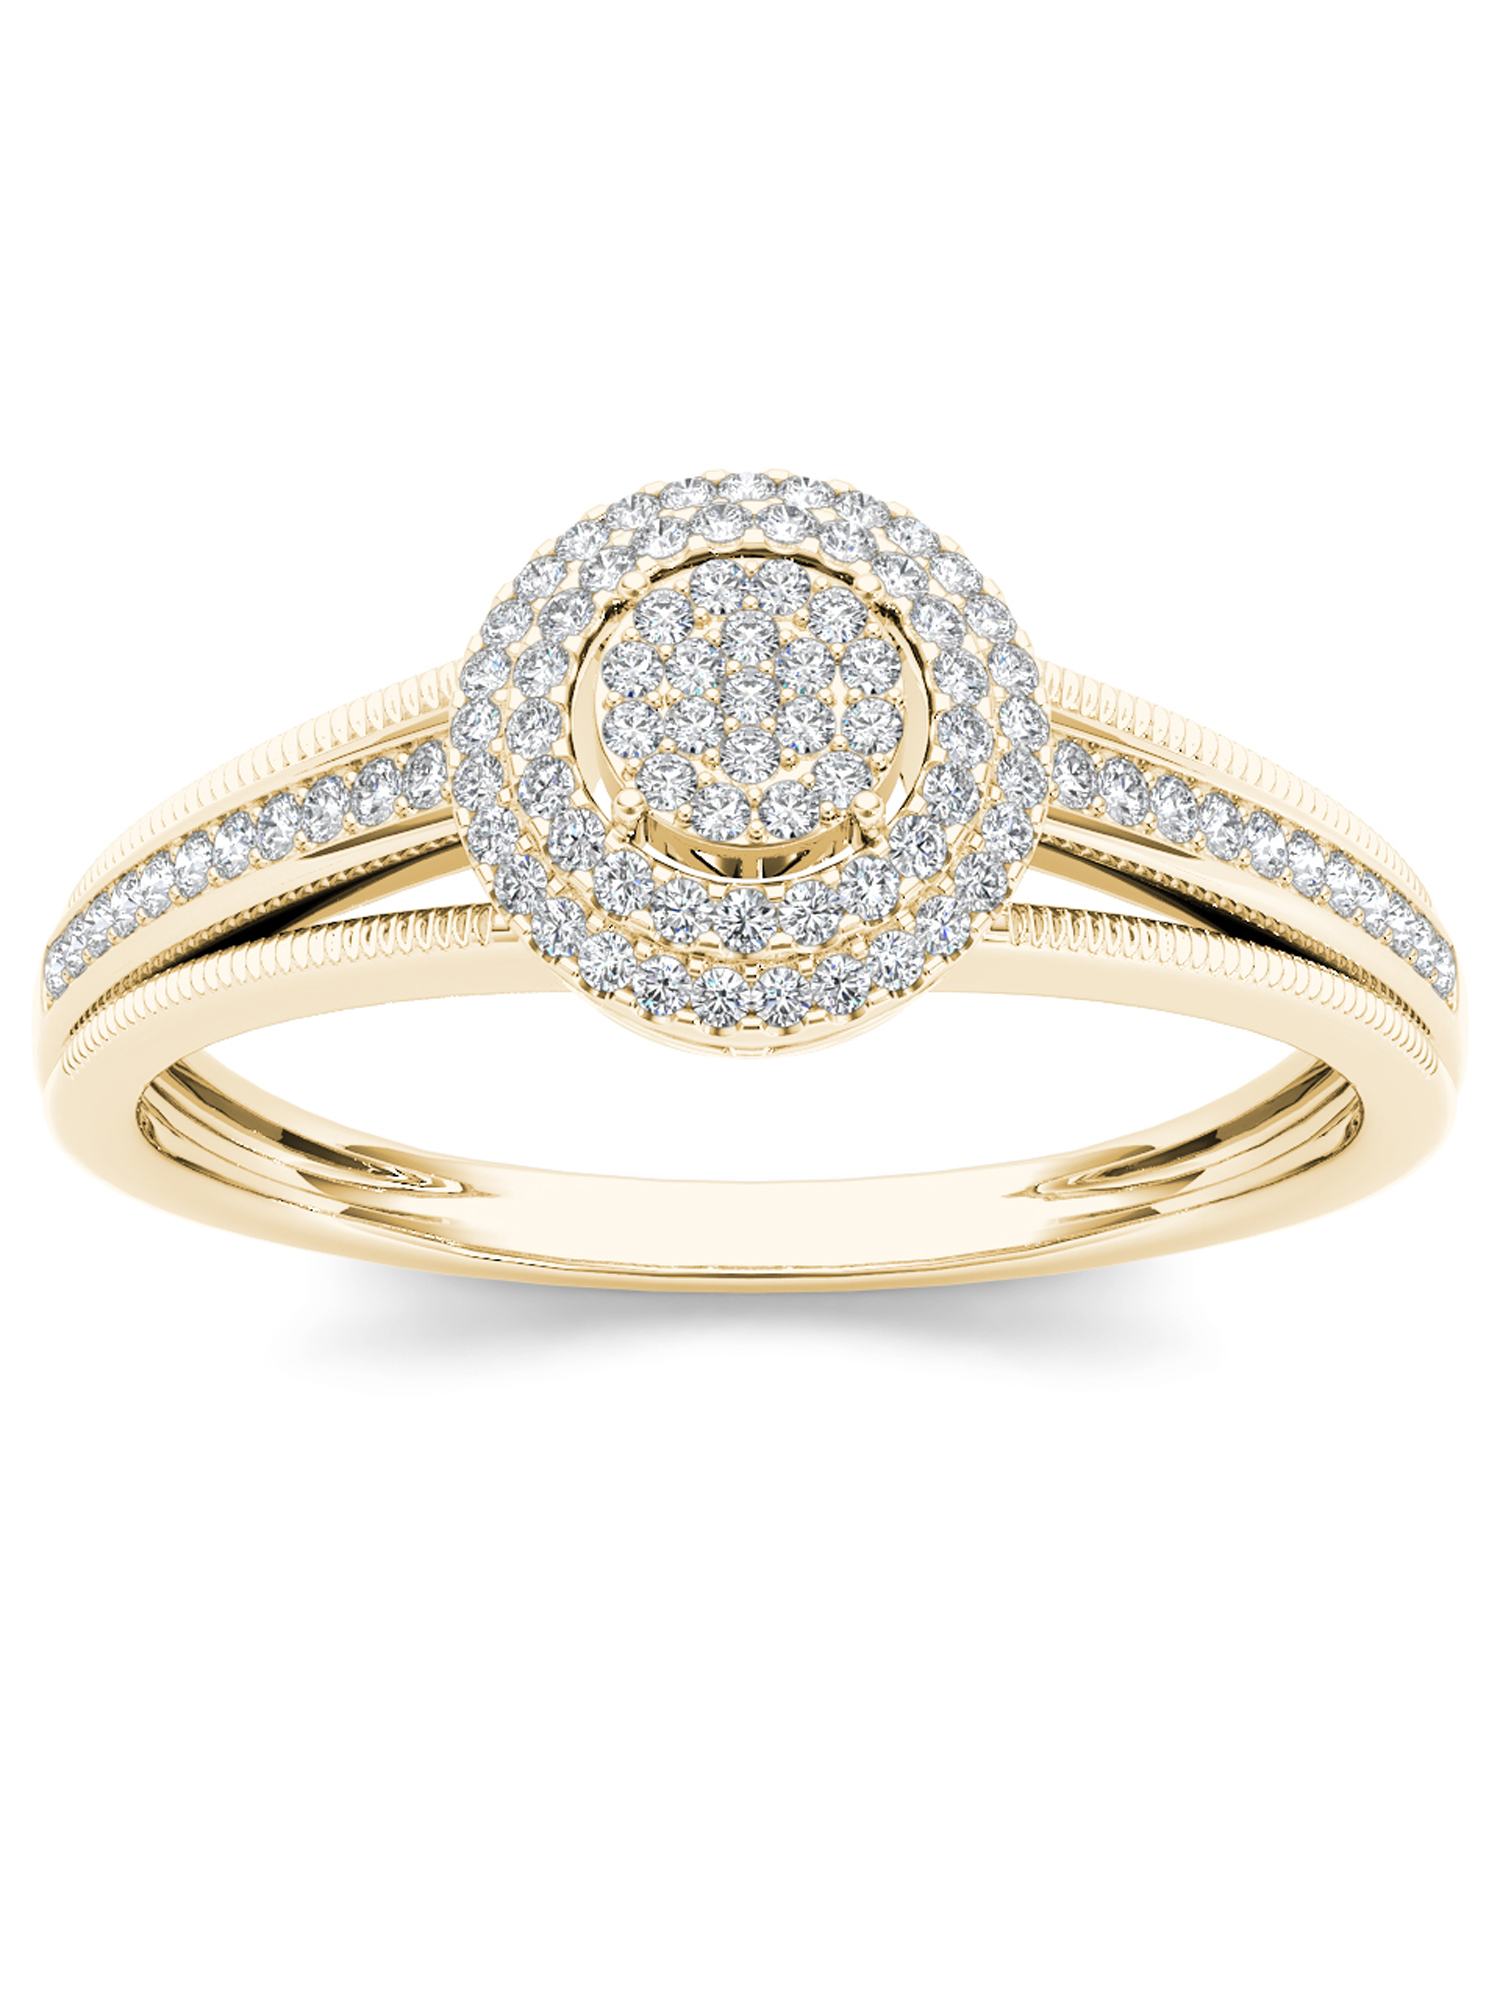 The Most Popular And Inspiring Ring Trends 2020 Wedding Rings